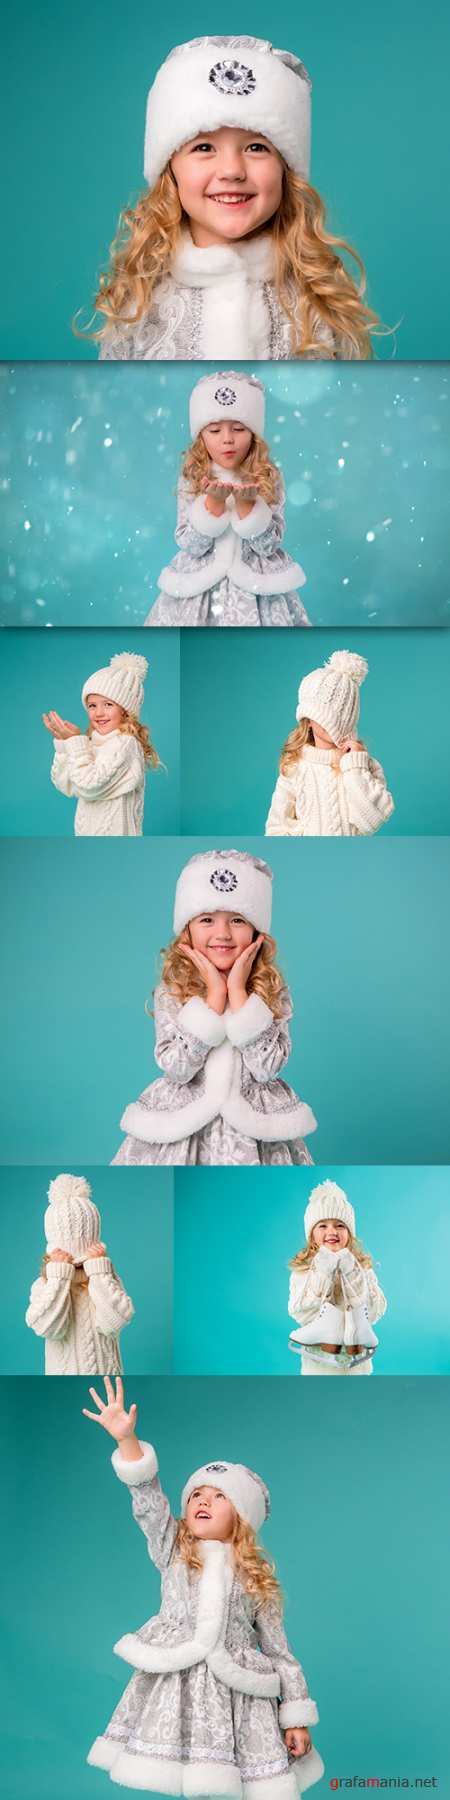 Little girl in snow maiden suit and knitted hat